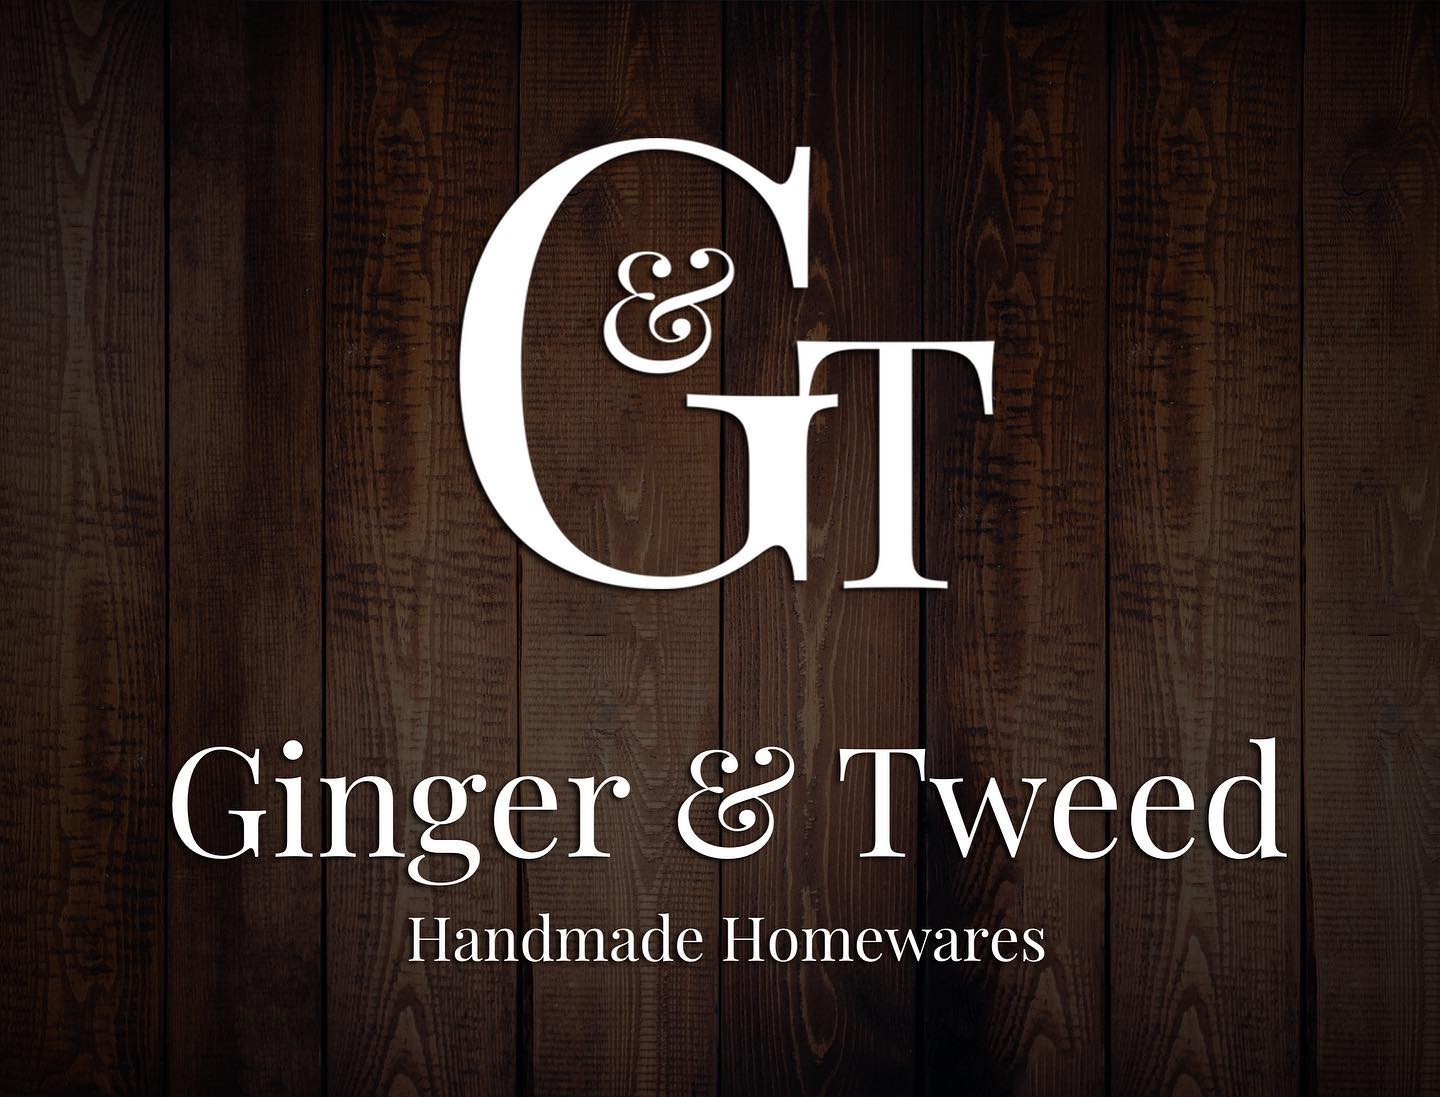 We're looking forward to being a part of @solocraftfair virtual market again tomorrow. Head over to their stories between 12pm and 2pm to browse handmade goodies from lots of talented craftspeople! ...#craftfair #handcrafted #homewares #virtualmarket #supportsmallbusiness #gingerandtweed #stayathome #shoponline